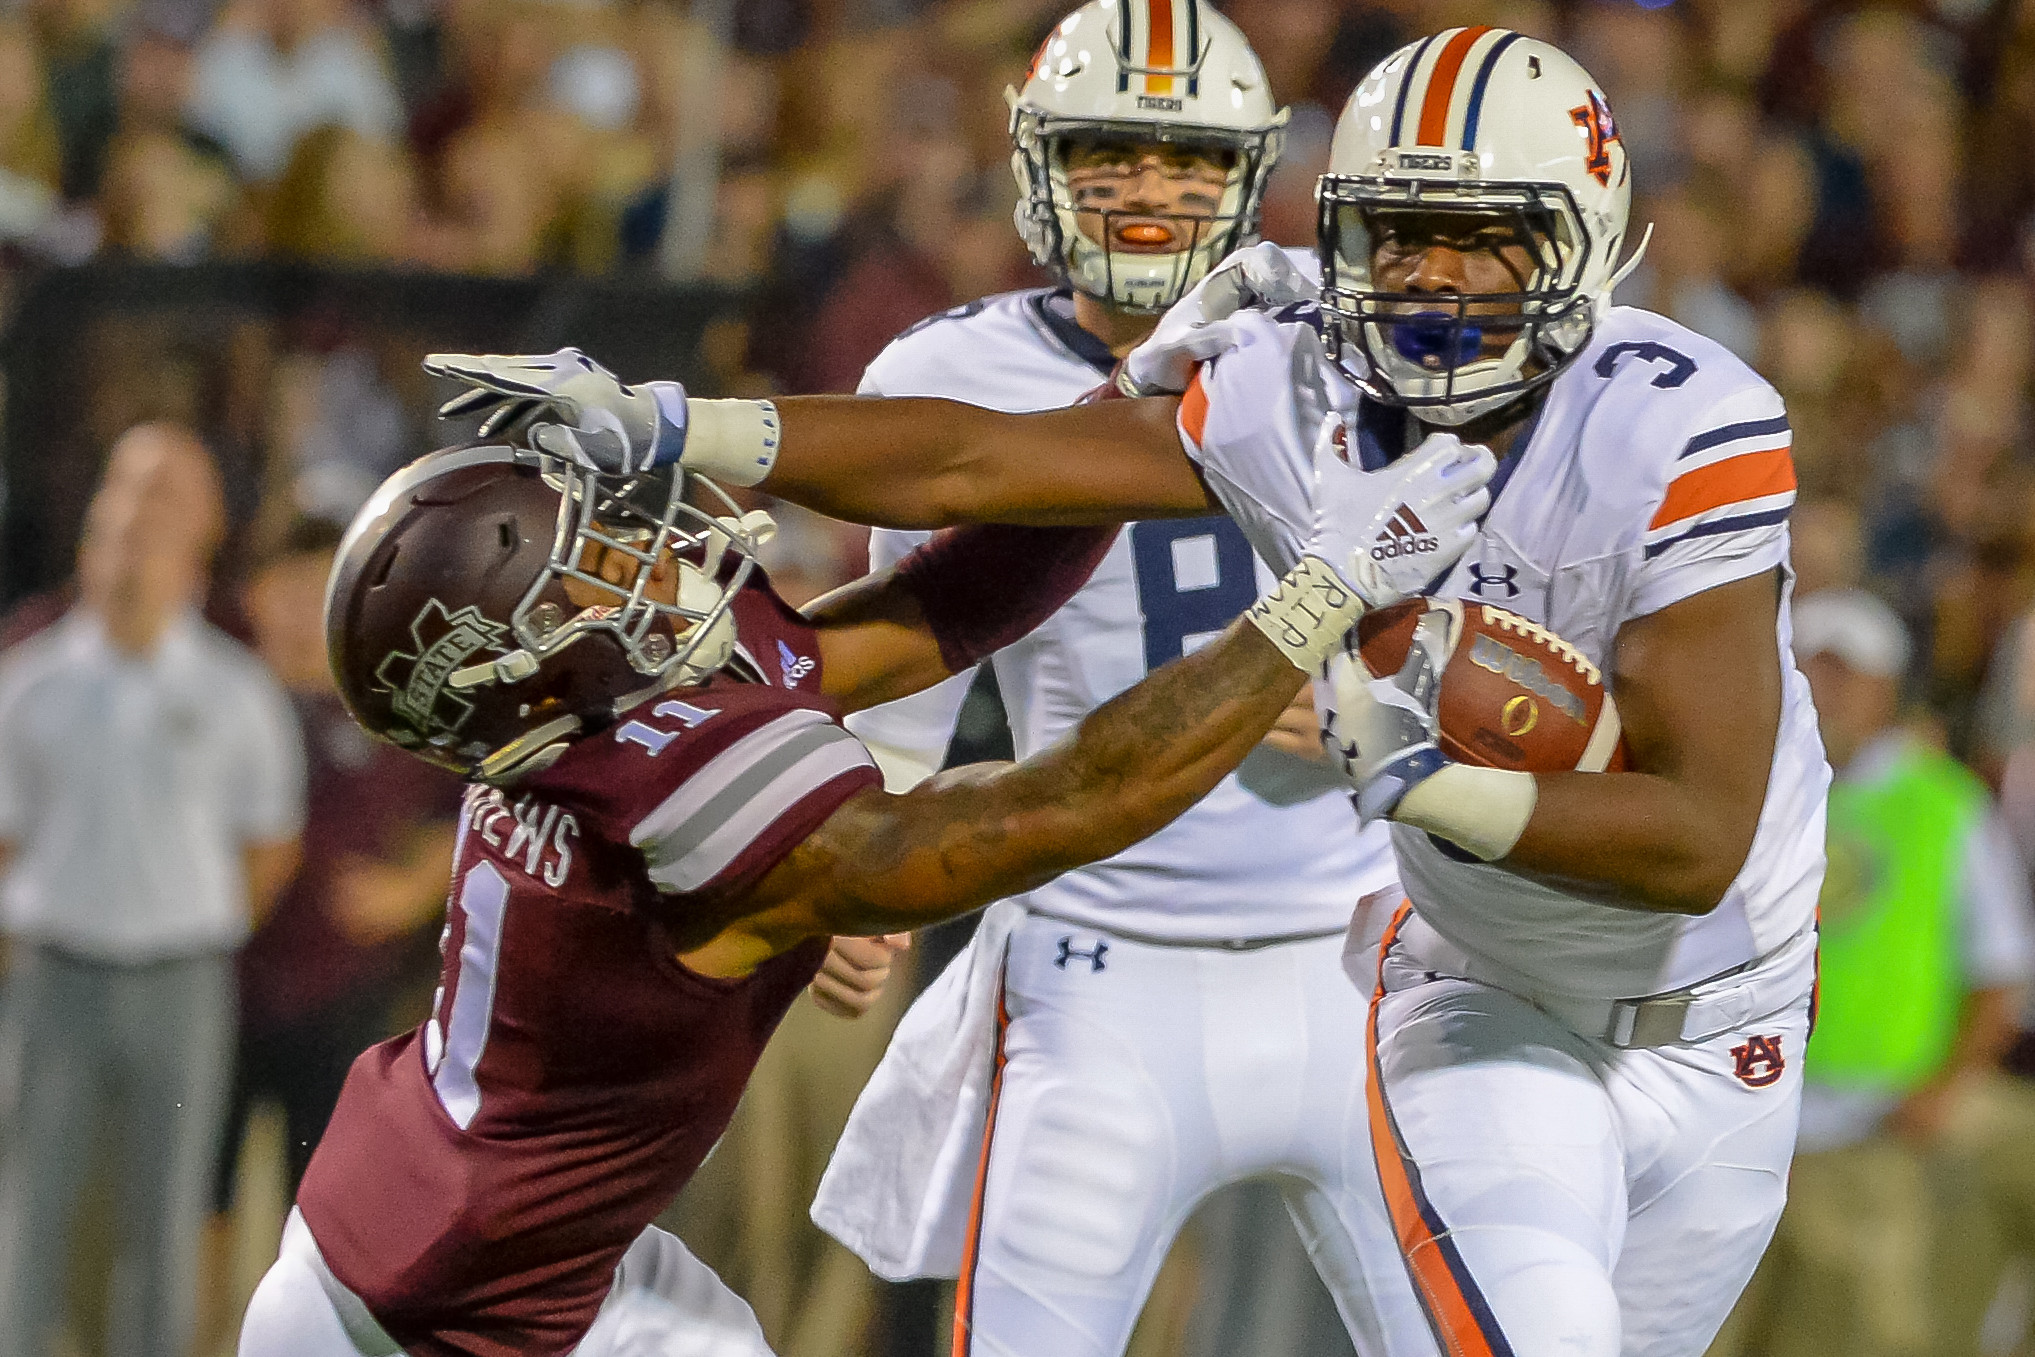 Auburn Tigers running back Asa Martin (20) breaks the tackle of Mississippi State Bulldogs safety Jaquarius Landrews (11) during the first half of Saturday's game, at Davis Wade Stadium in Starkville, MS. Daily Mountain Eagle -  Jeff Johnsey